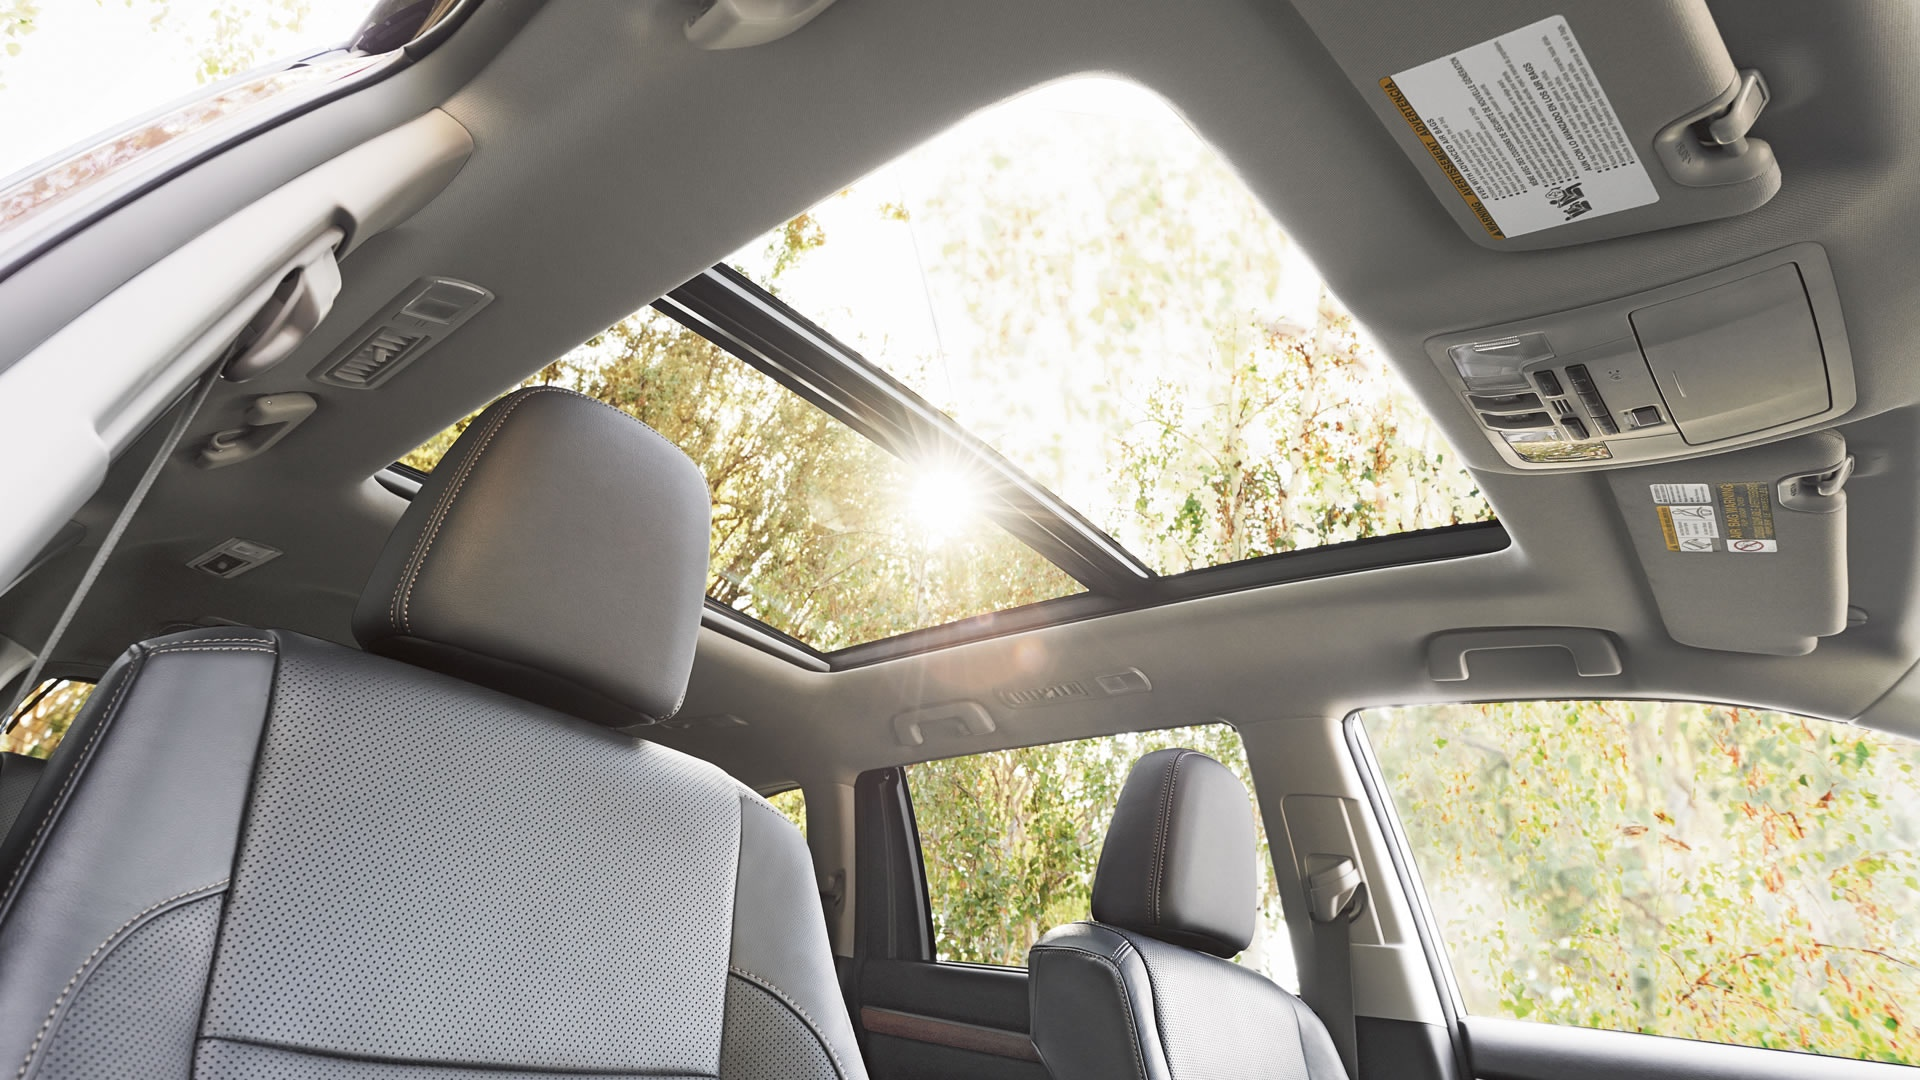 Panoramic Moonroof in the 2018 Highlander Hybrid